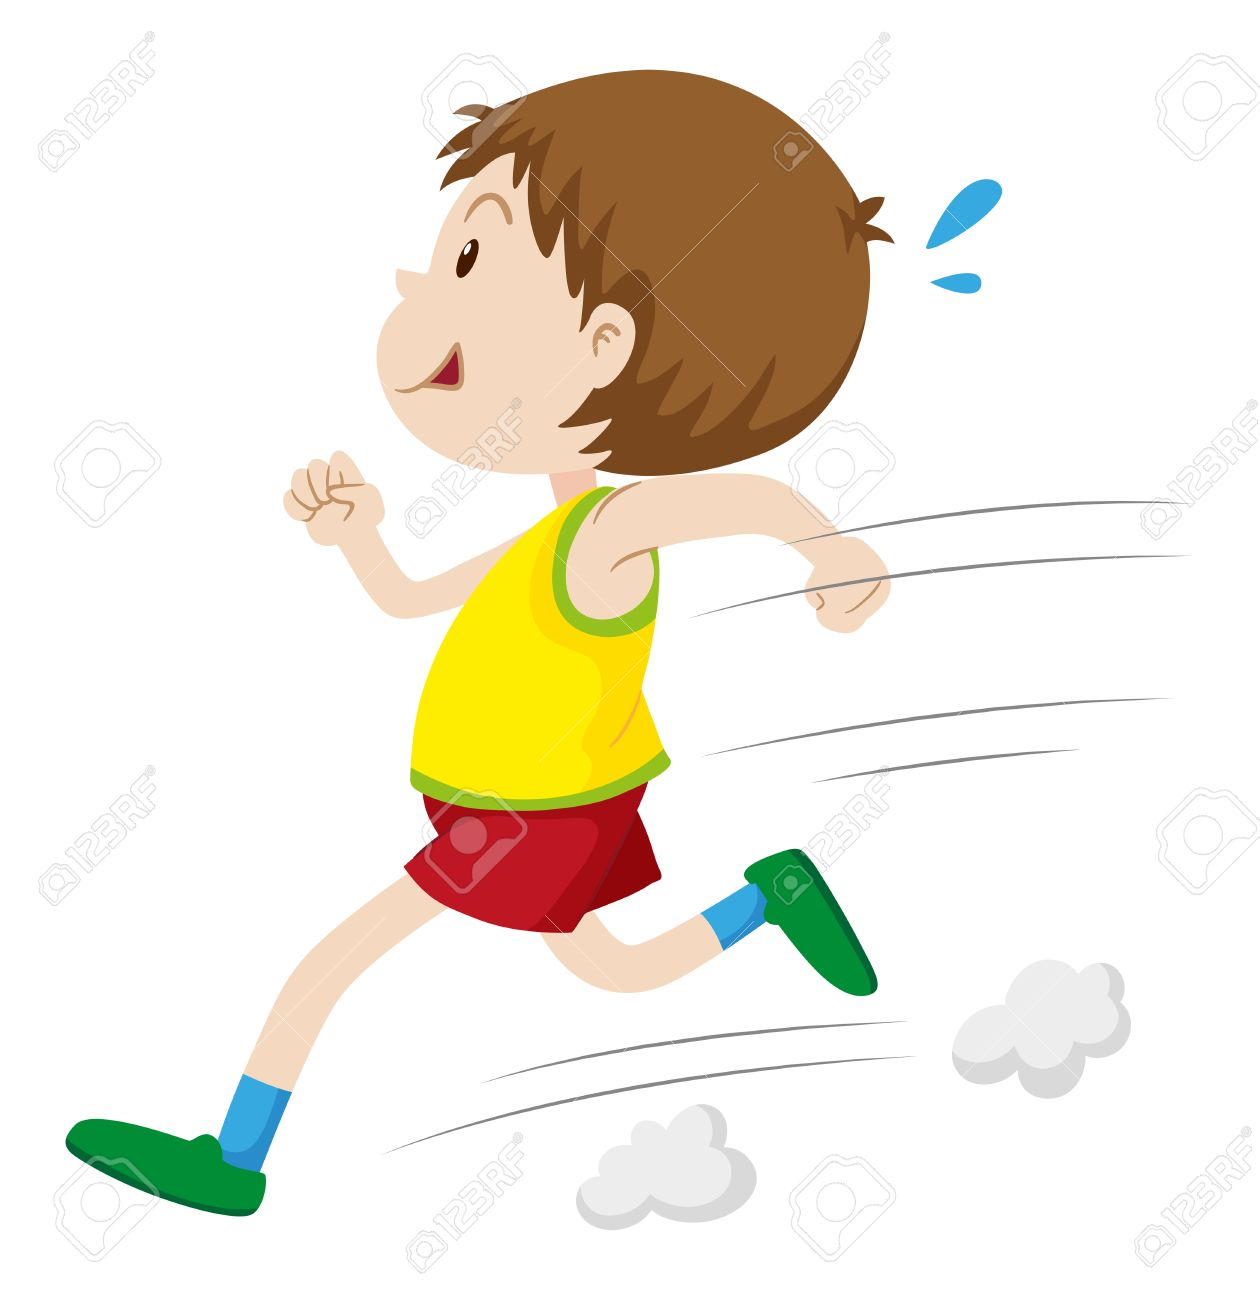 Little boy running fast illustration.